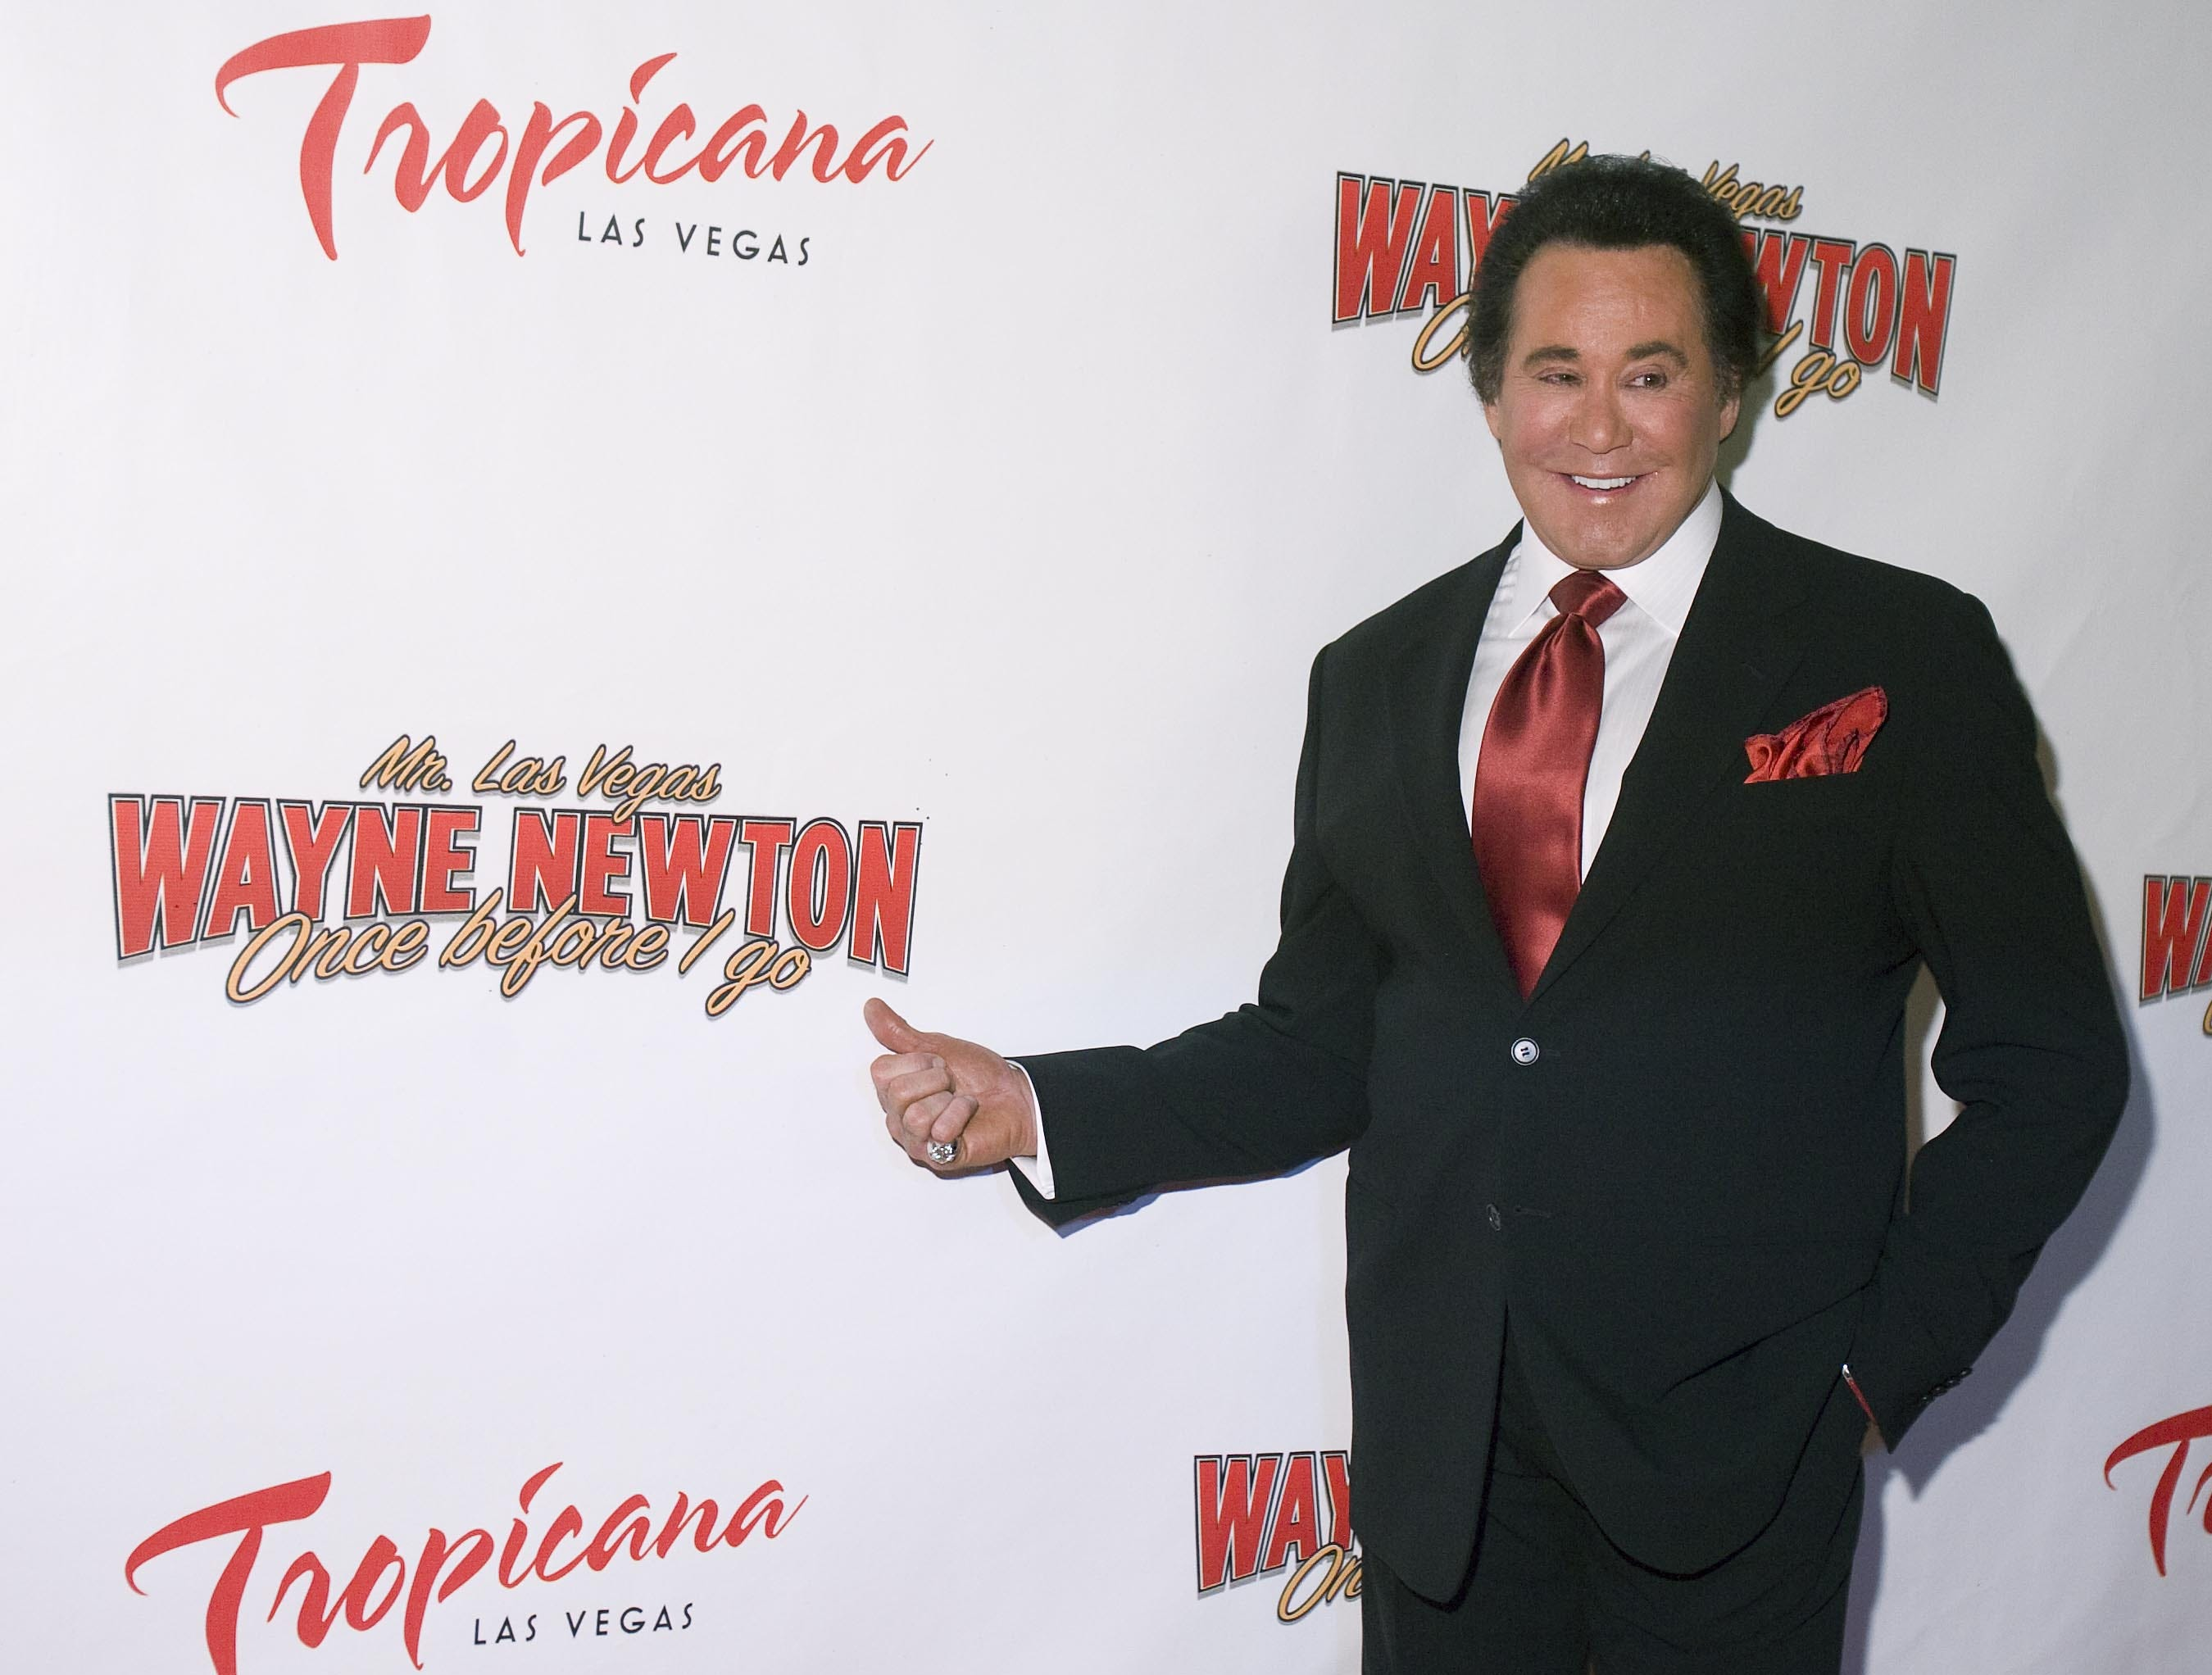 Wayne Newton poses on the red carpet for the grand opening of his new Las Vegas show, Once Before I Go, on Wednesday, Oct. 28, 2009.